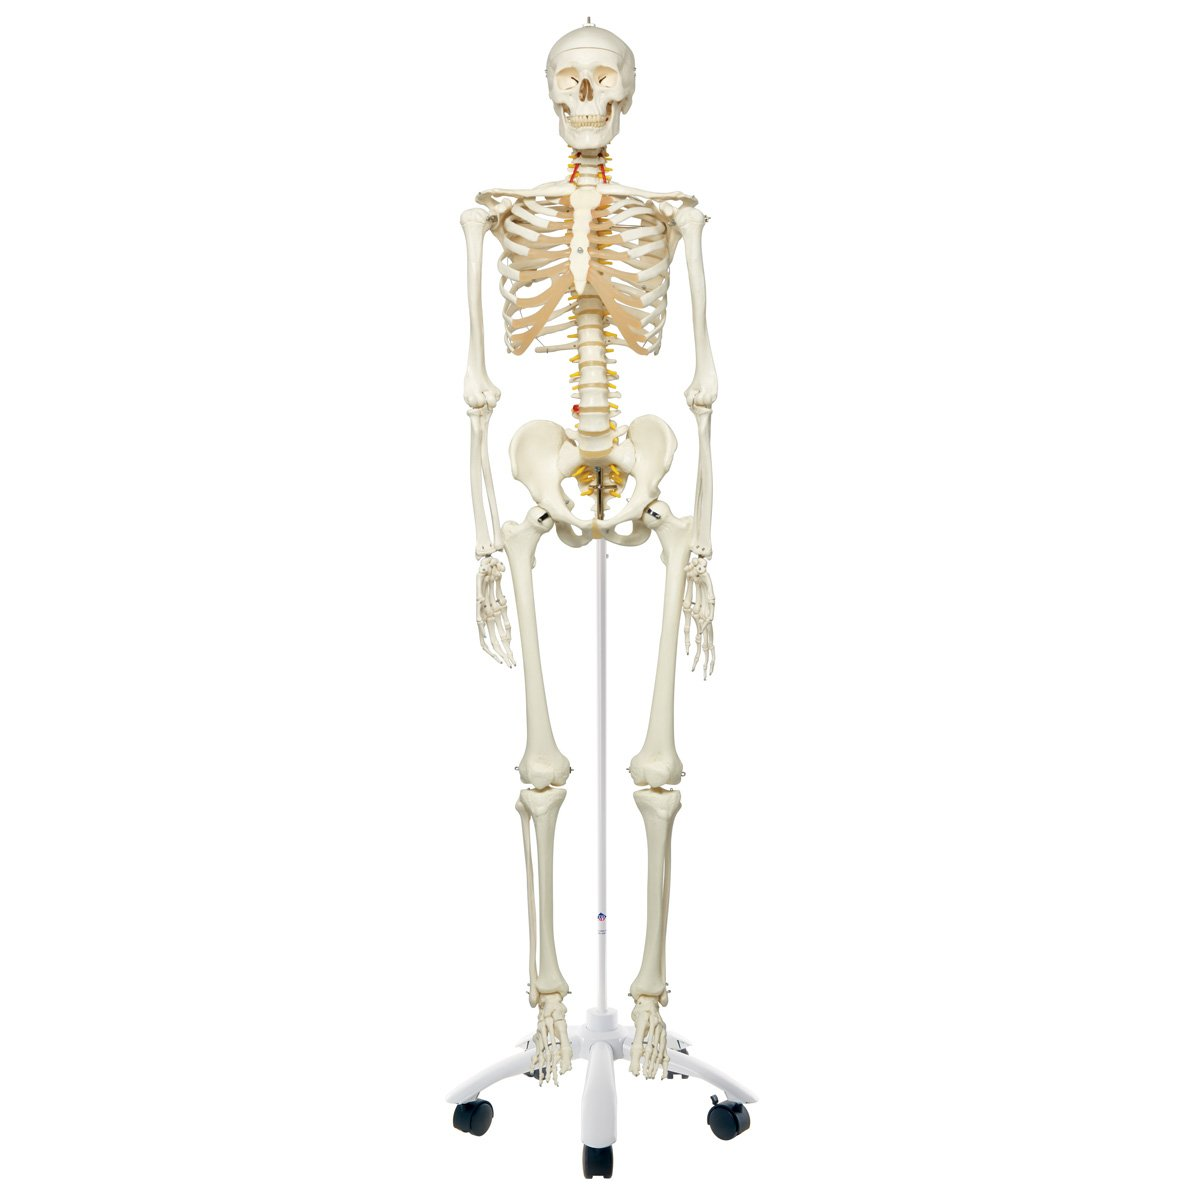 3b Scientific A15 Plastic Flexible Human Skeleton Model Fred